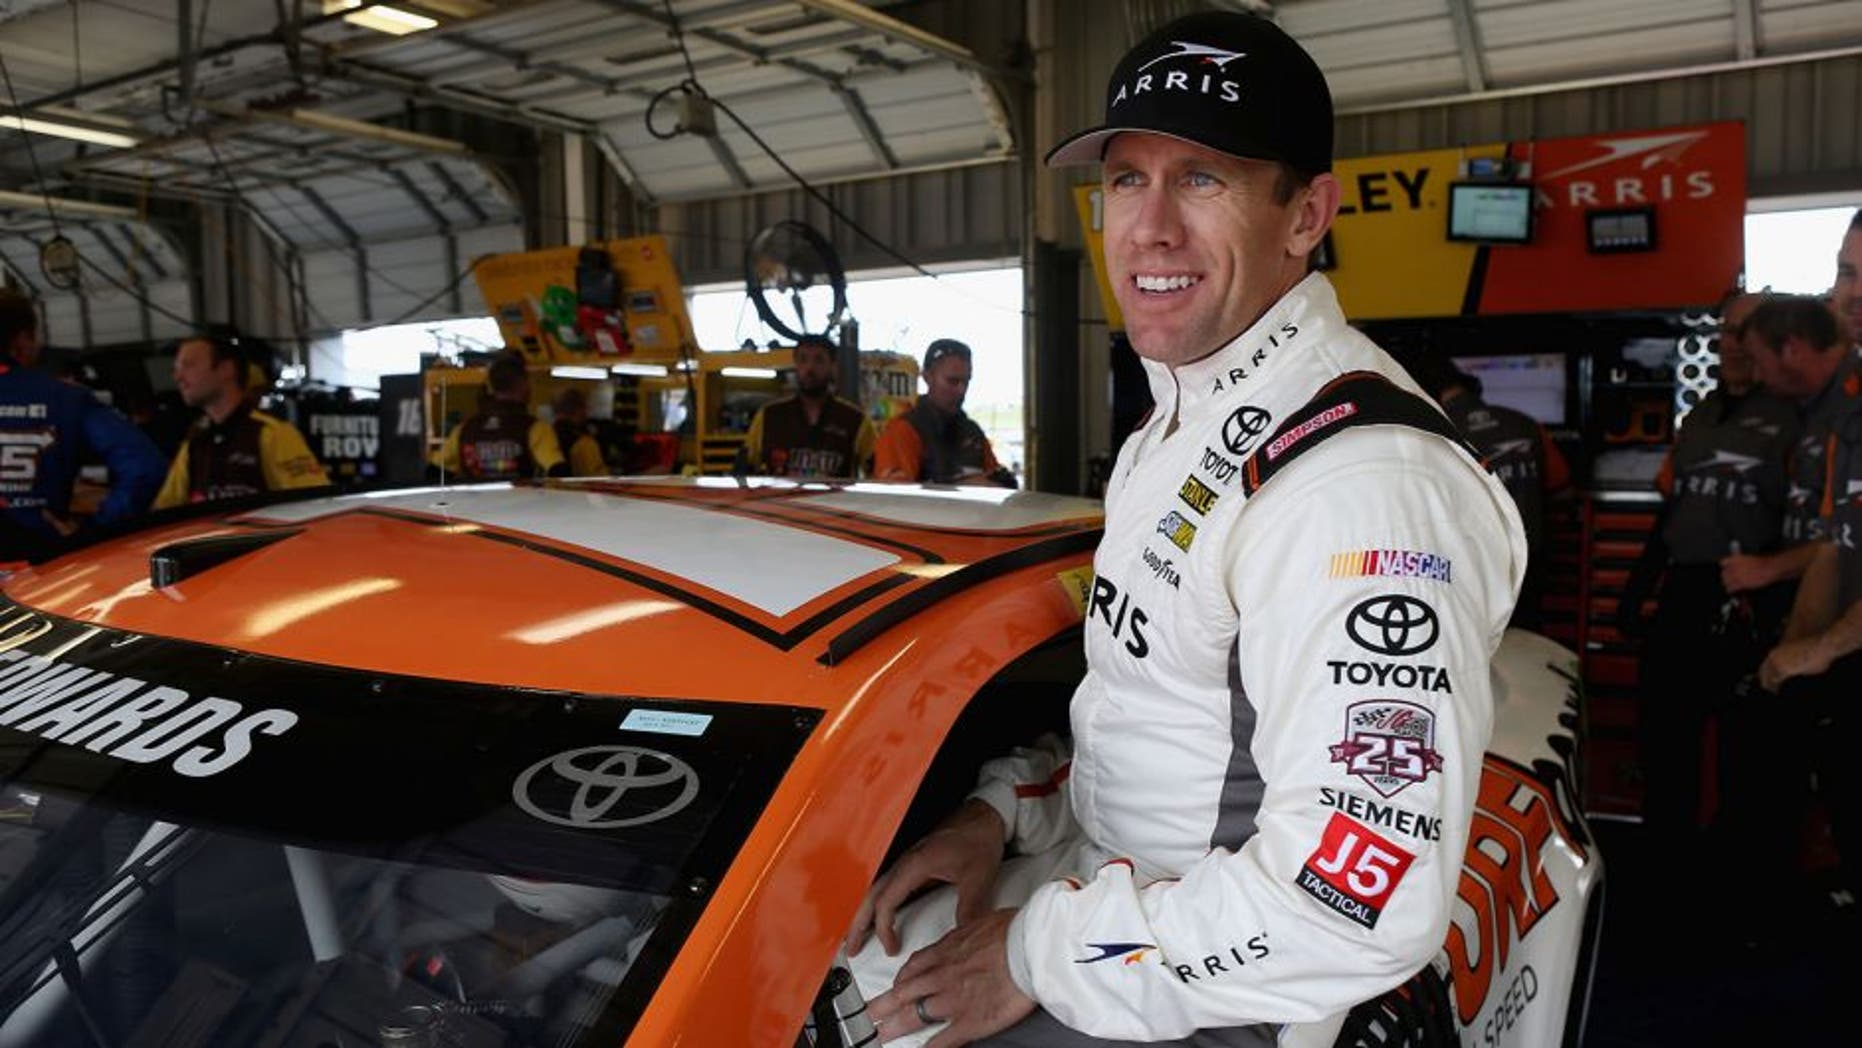 SPARTA, KY - JULY 07: Carl Edwards, driver of the #19 ARRIS Surfboard Toyota, climbs into his car during practice for the NASCAR Sprint Cup Series Quaker State 400 at Kentucky Speedway on July 7, 2016 in Sparta, Kentucky. (Photo by Dylan Buell/Getty Images)